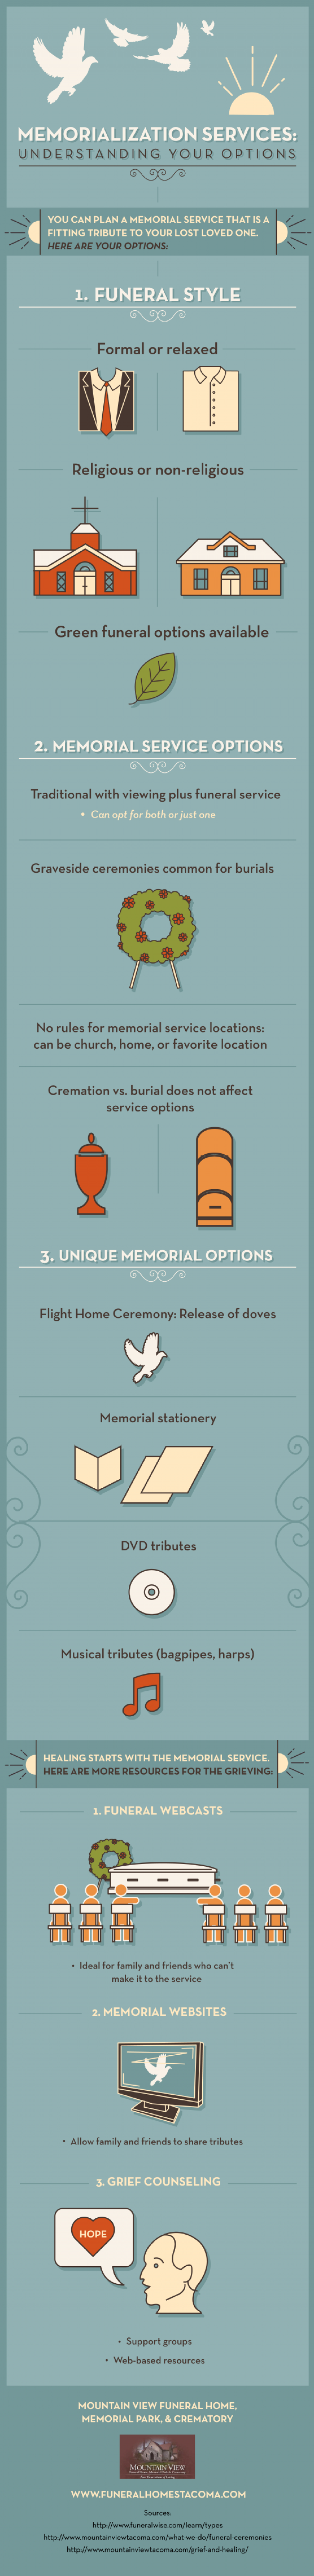 Memorialization Services: Understanding Your Options Infographic